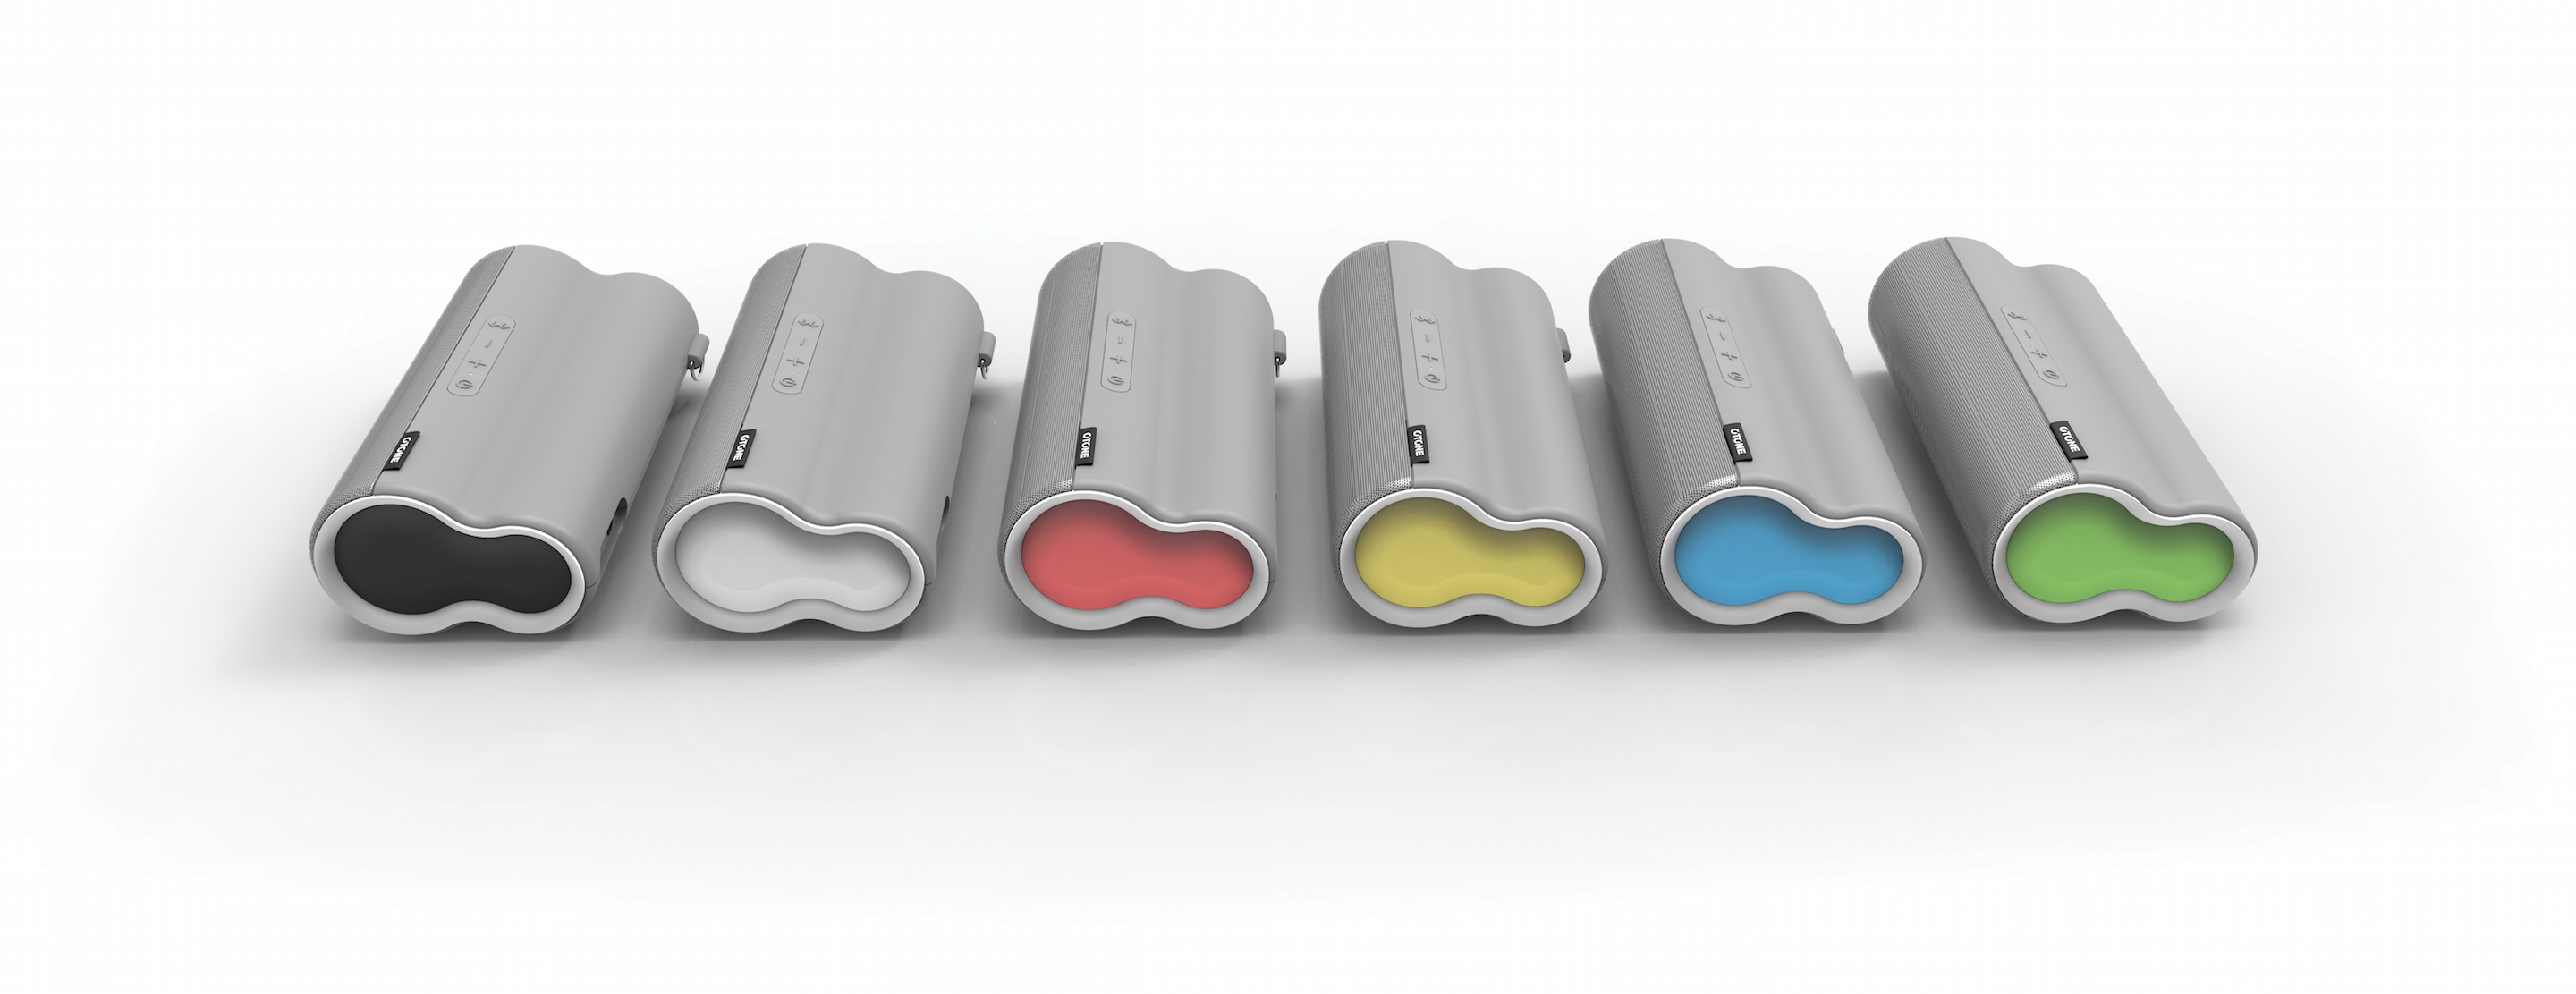 OTONE Launches Blufiniti Bluetooth Speaker With A Limo Ride Around London